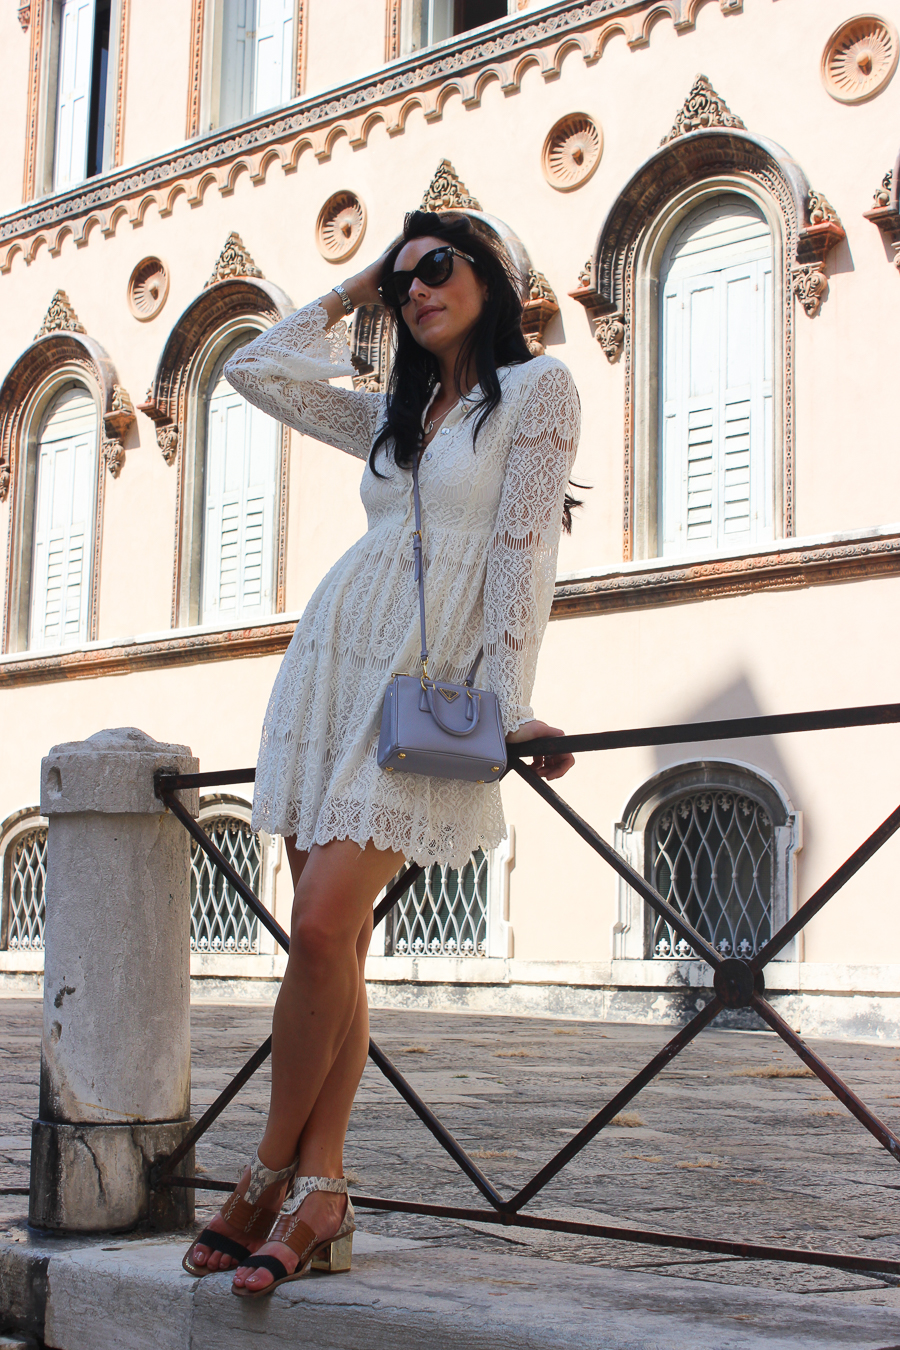 Sabrina Chakici - Clutch and Carry on - UK Fashion blogger & UK Travel Blogger - Venice Travel Blog-45